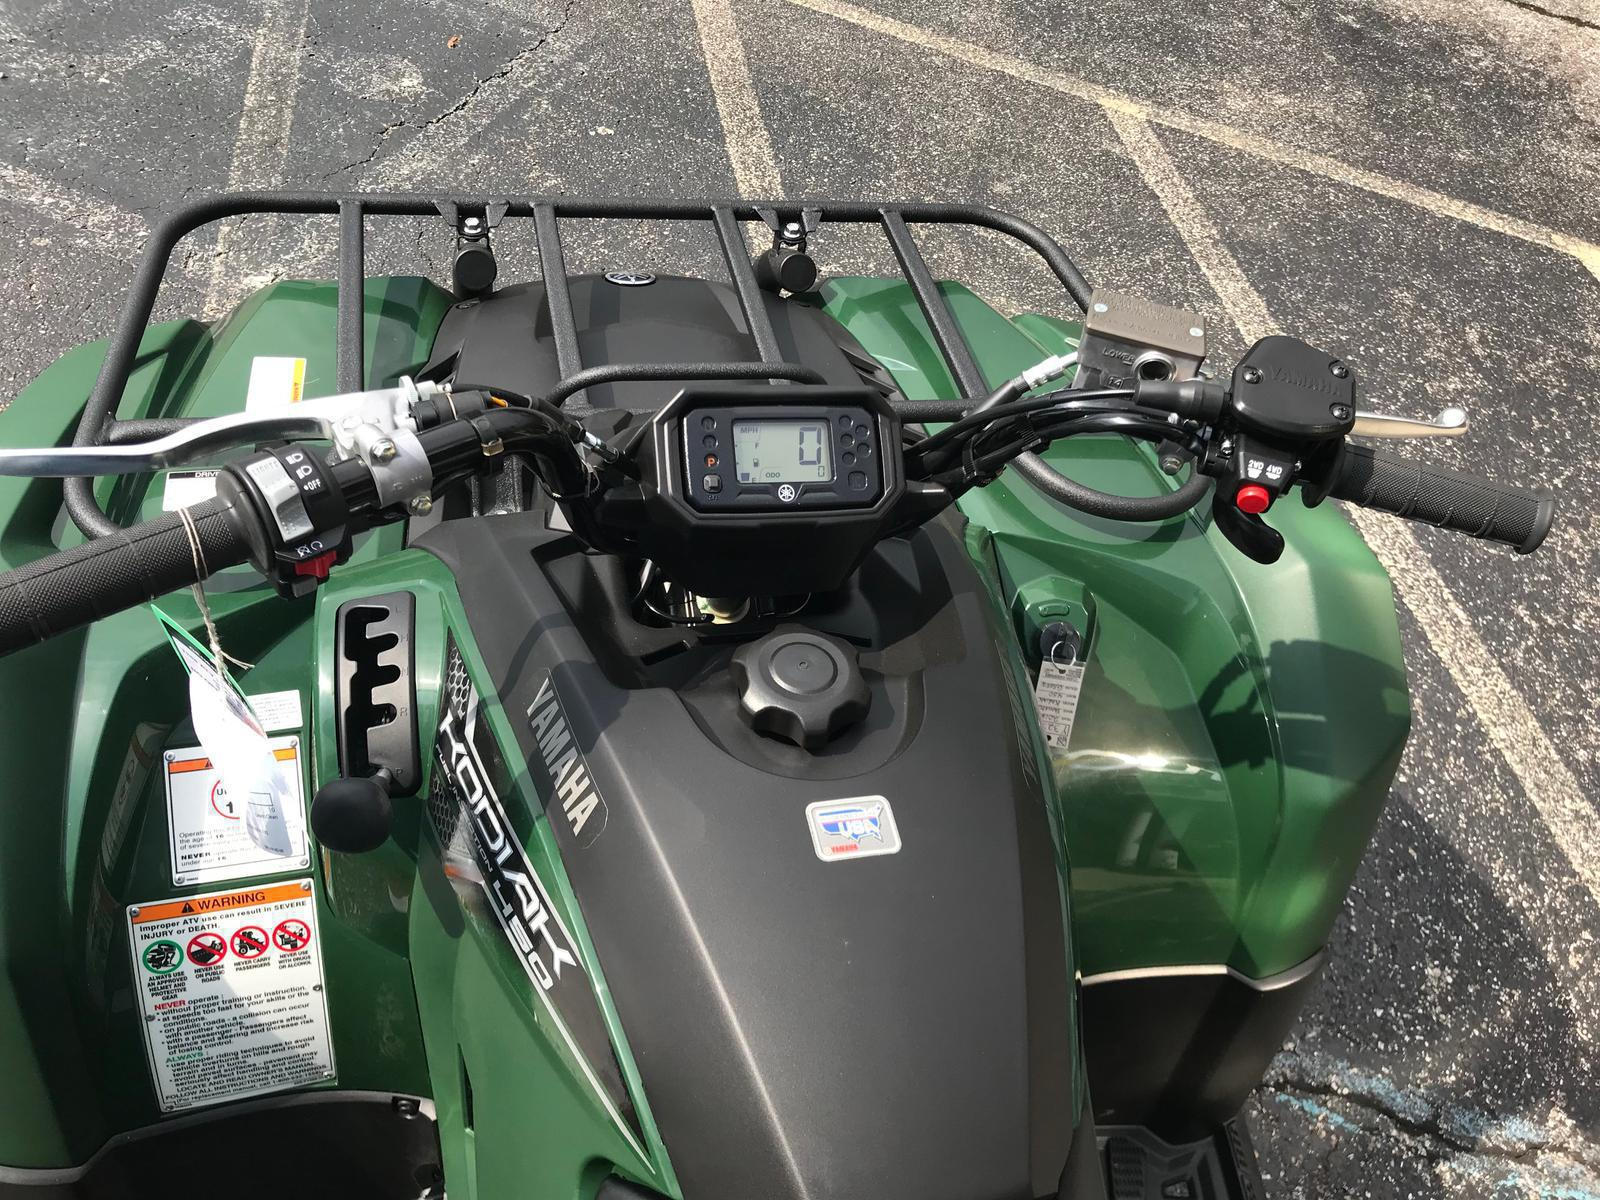 2018 Yamaha Kodiak 450 Awd For Sale In Martinsville Flat Out Fuel Filter Green 10